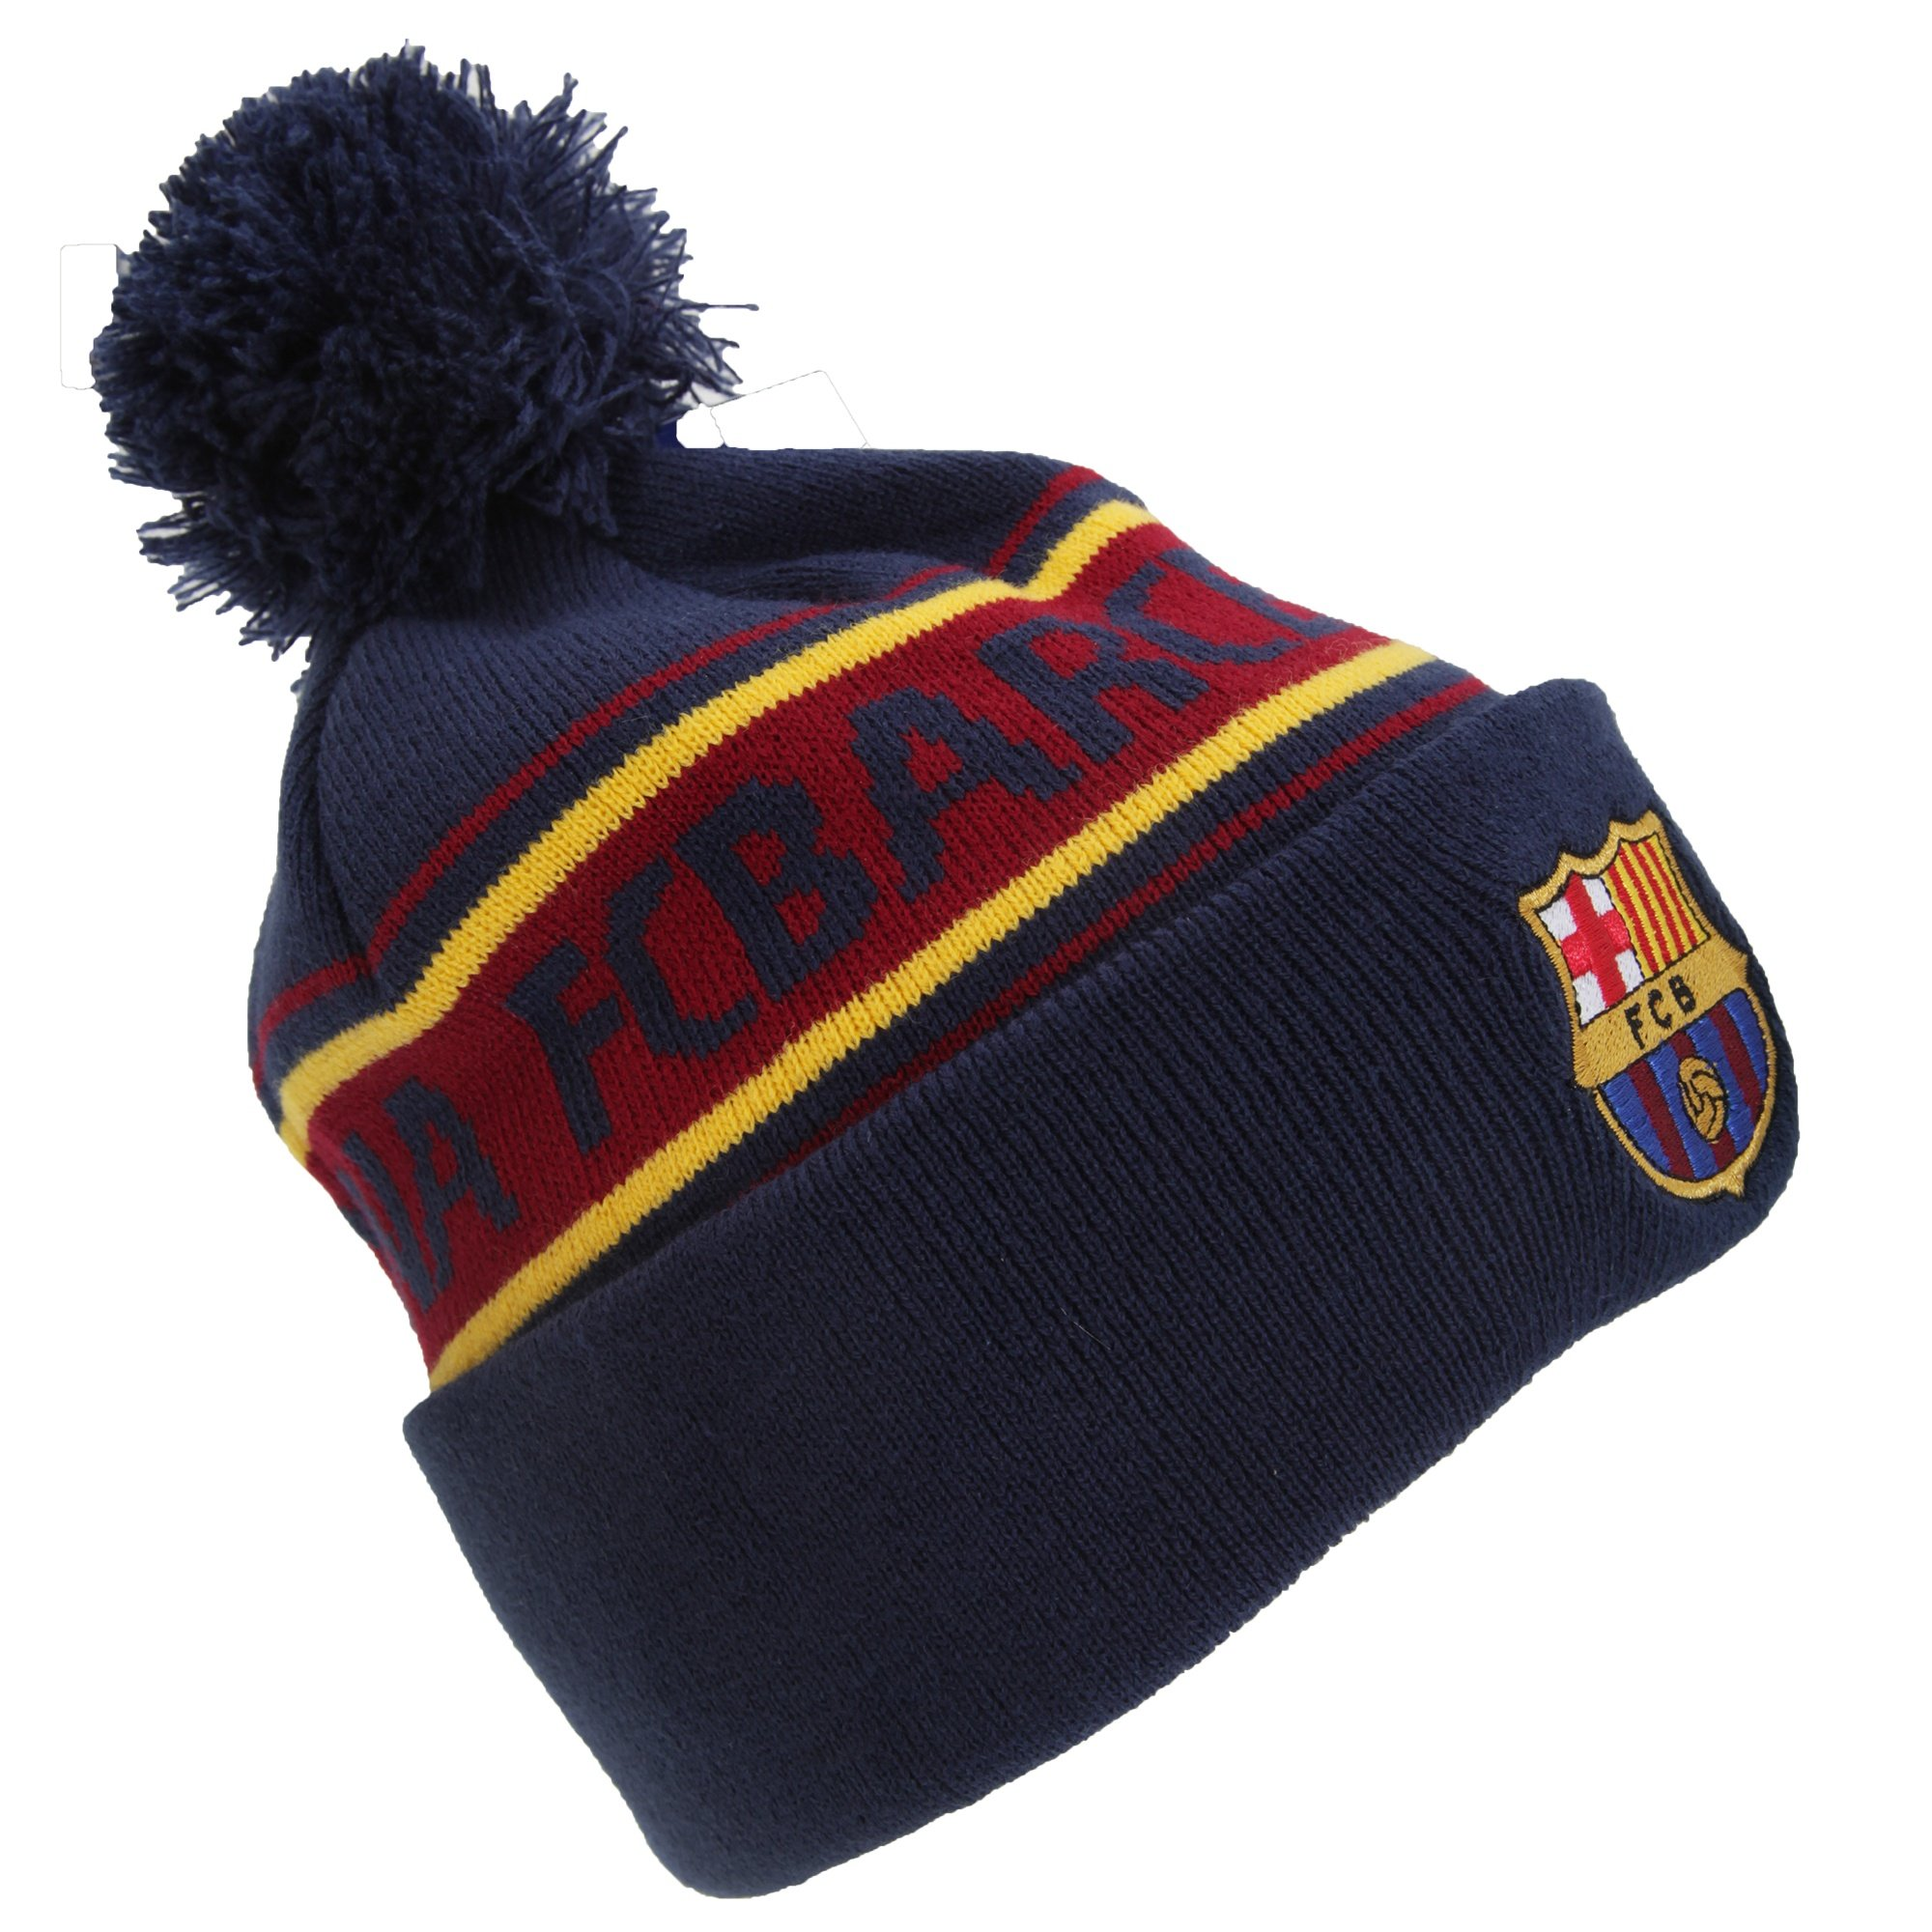 486b12f2a9c9e Get Quotations · FC Barcelona Official Text Winter Beanie Hat